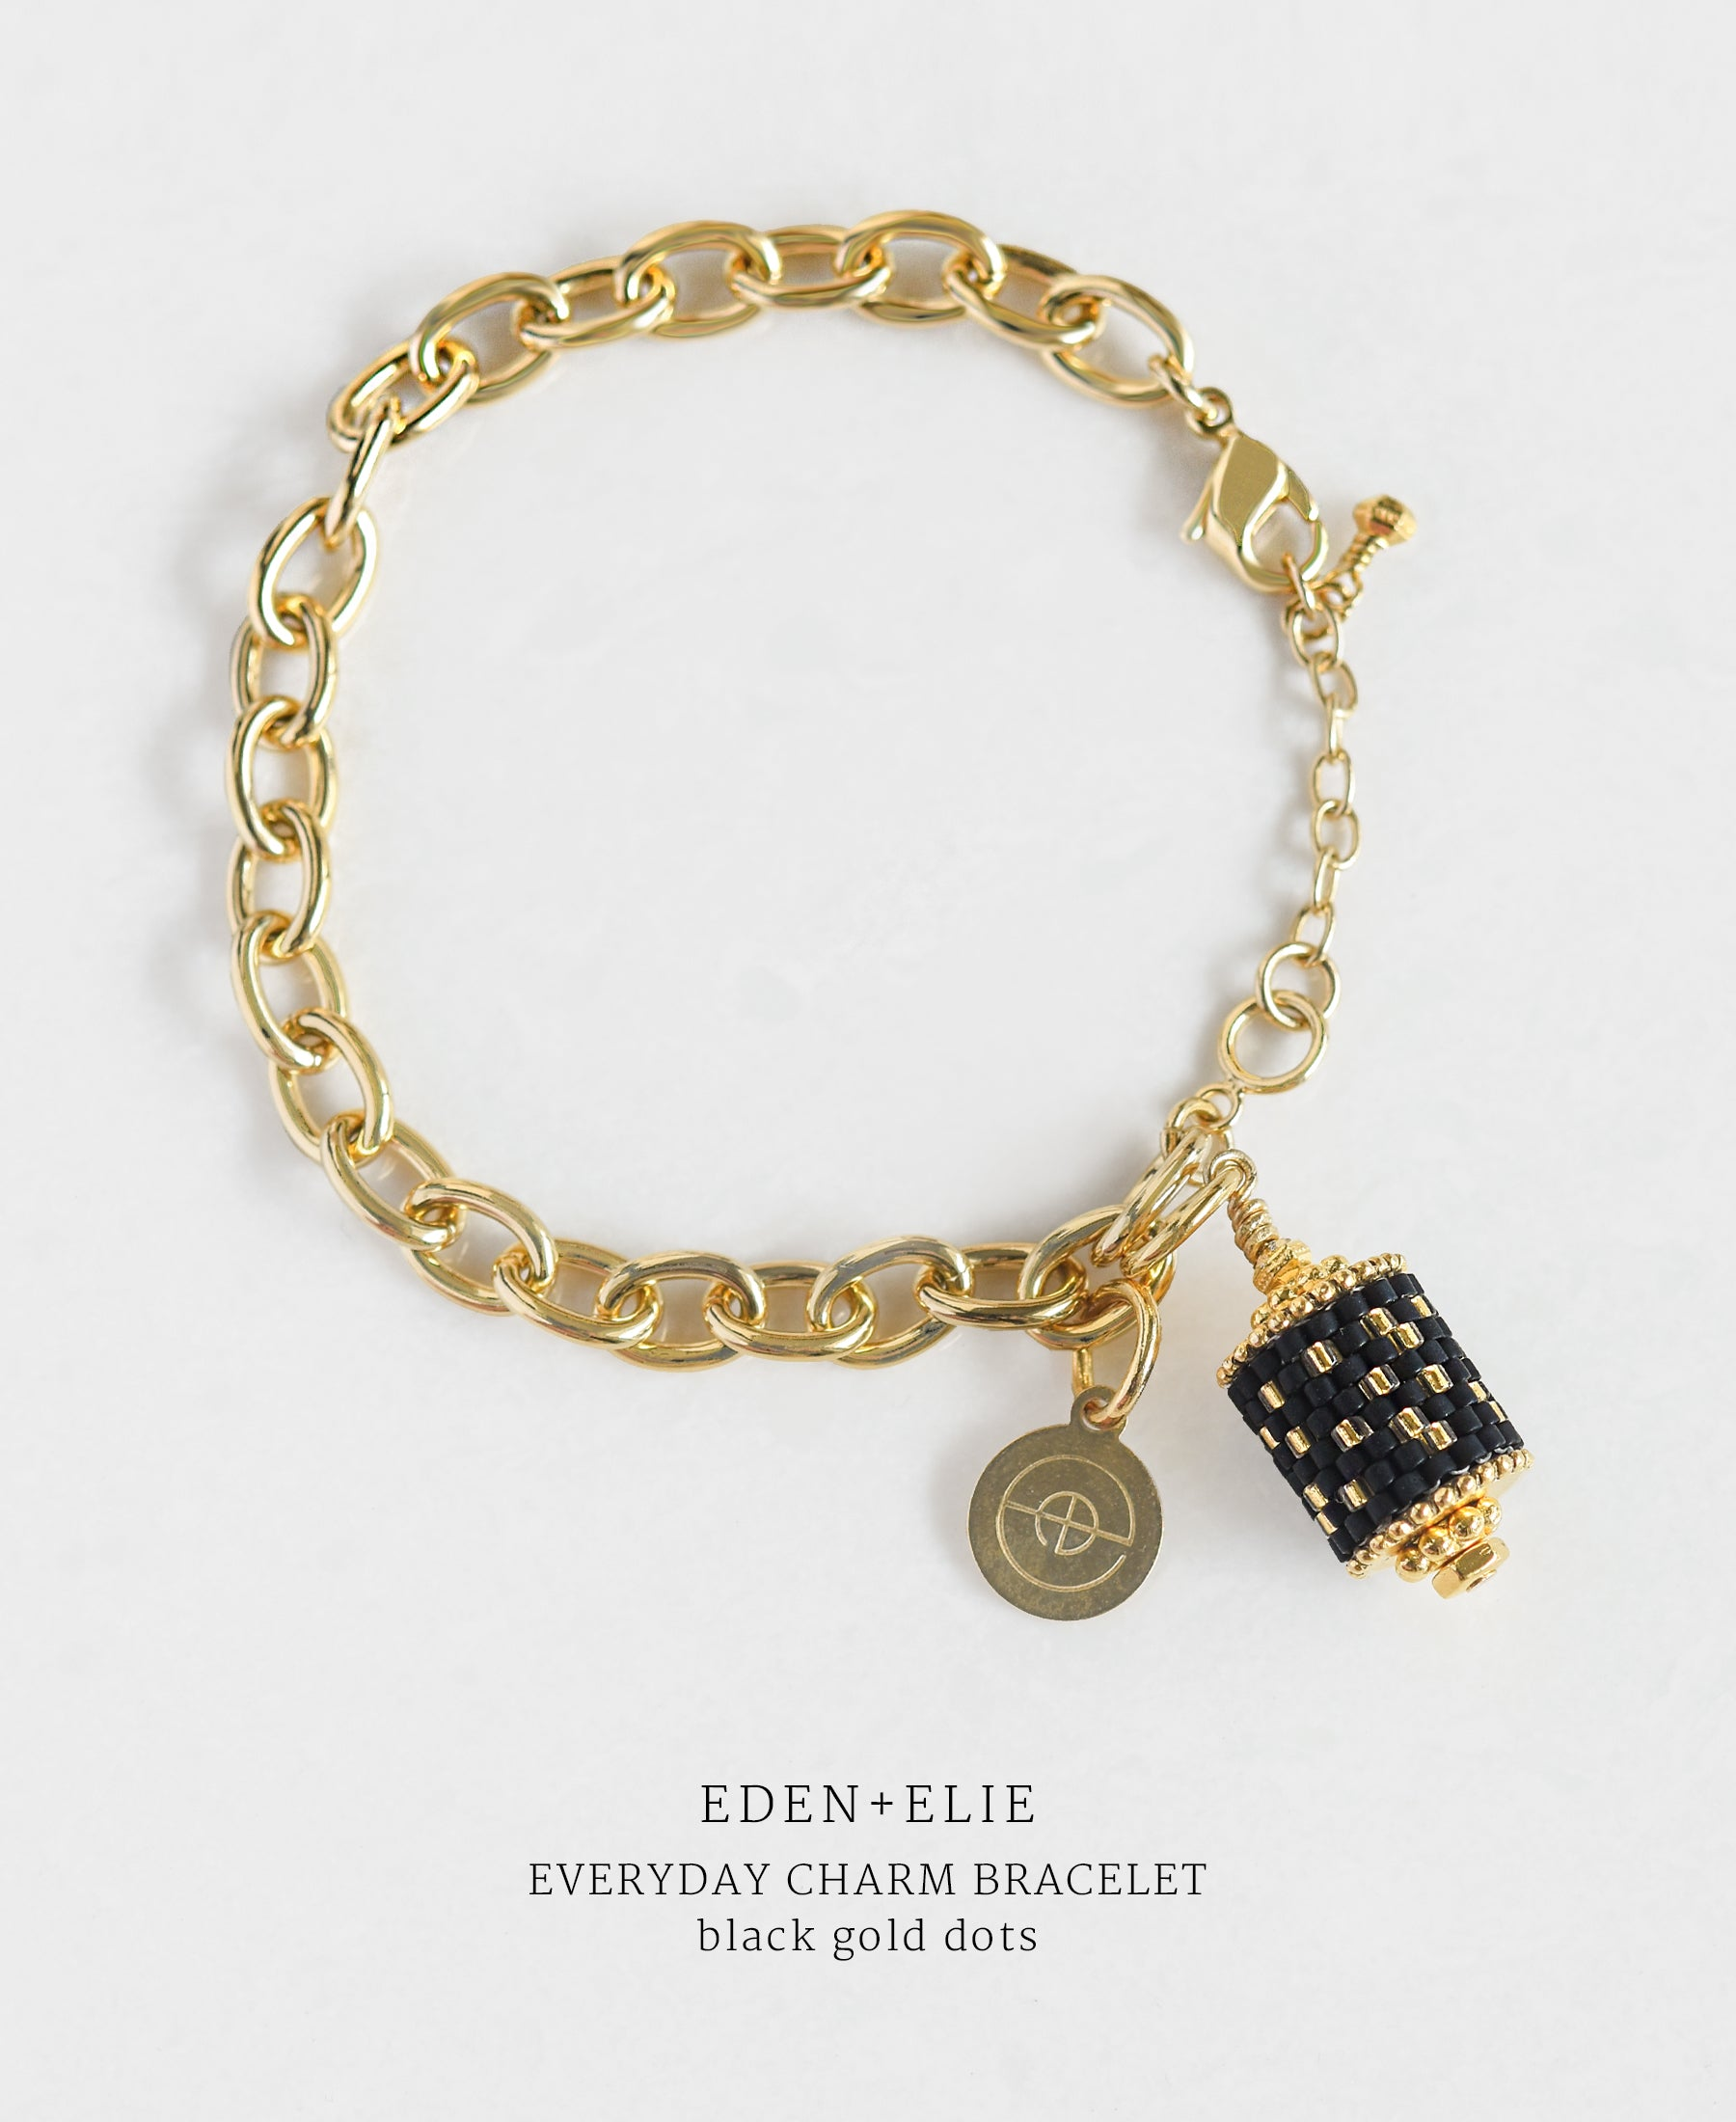 EDEN + ELIE Everyday gold charm bracelet - black gold dots